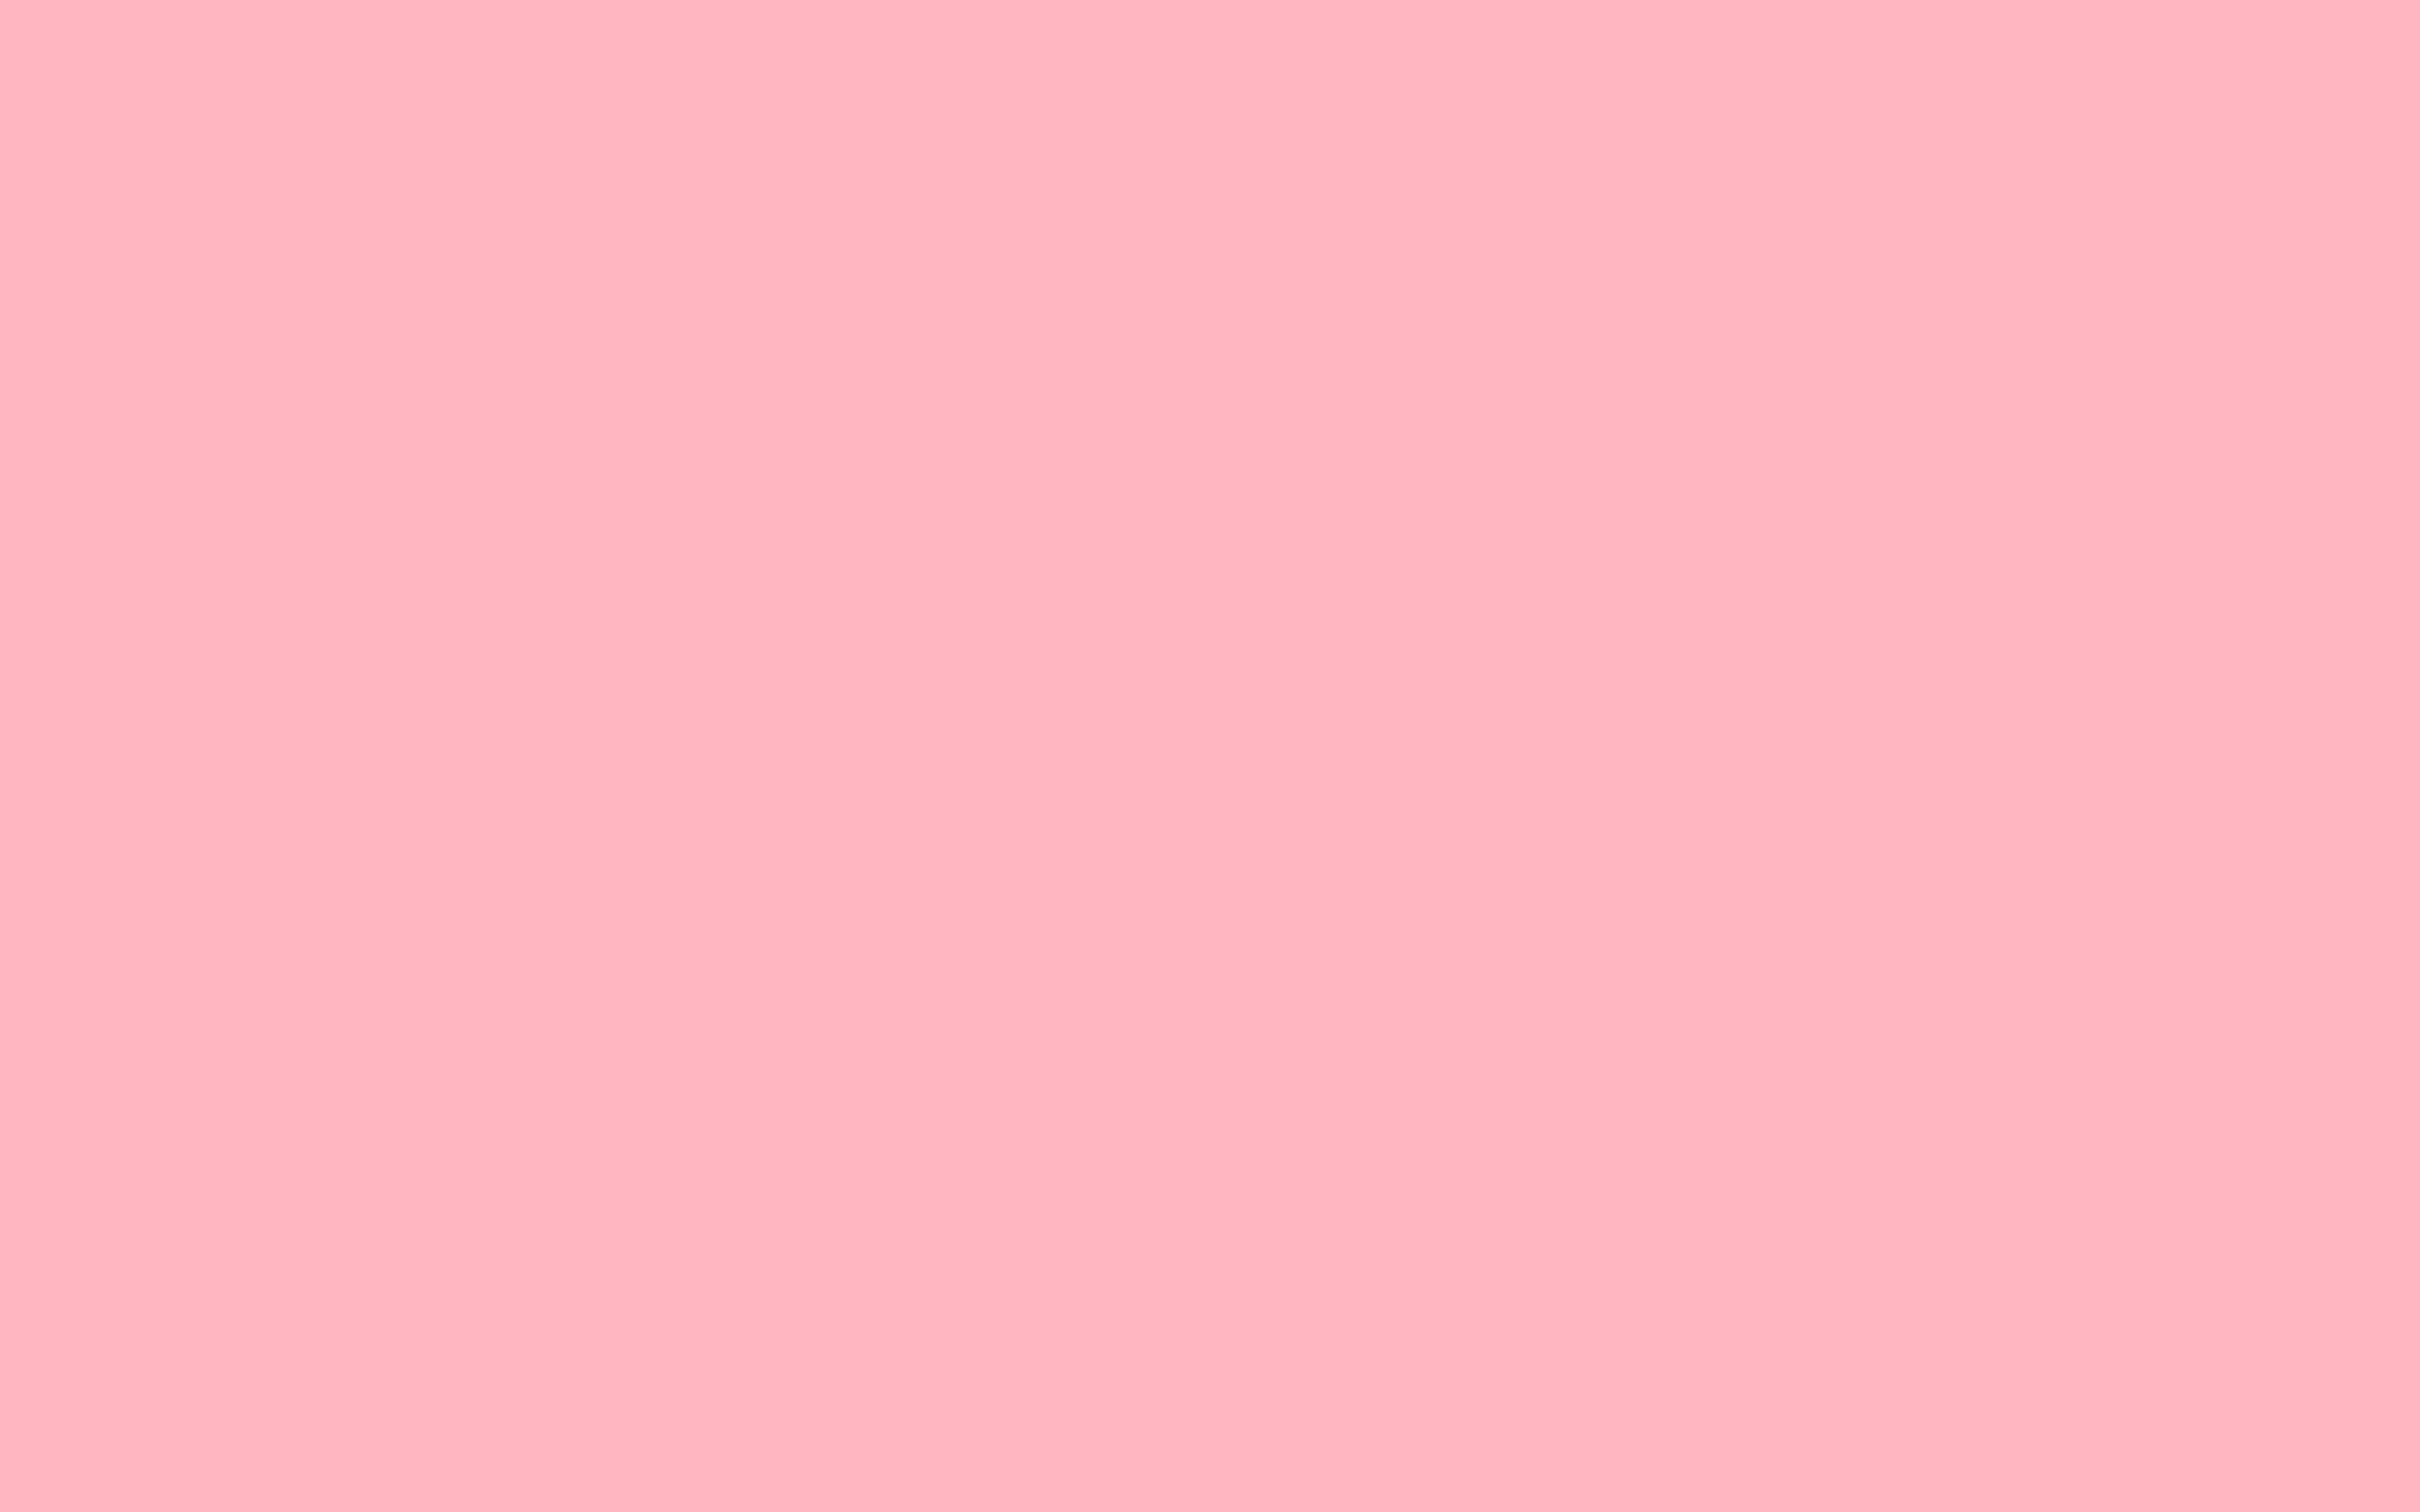 Pink solid color background view and download the below background 2880x1800